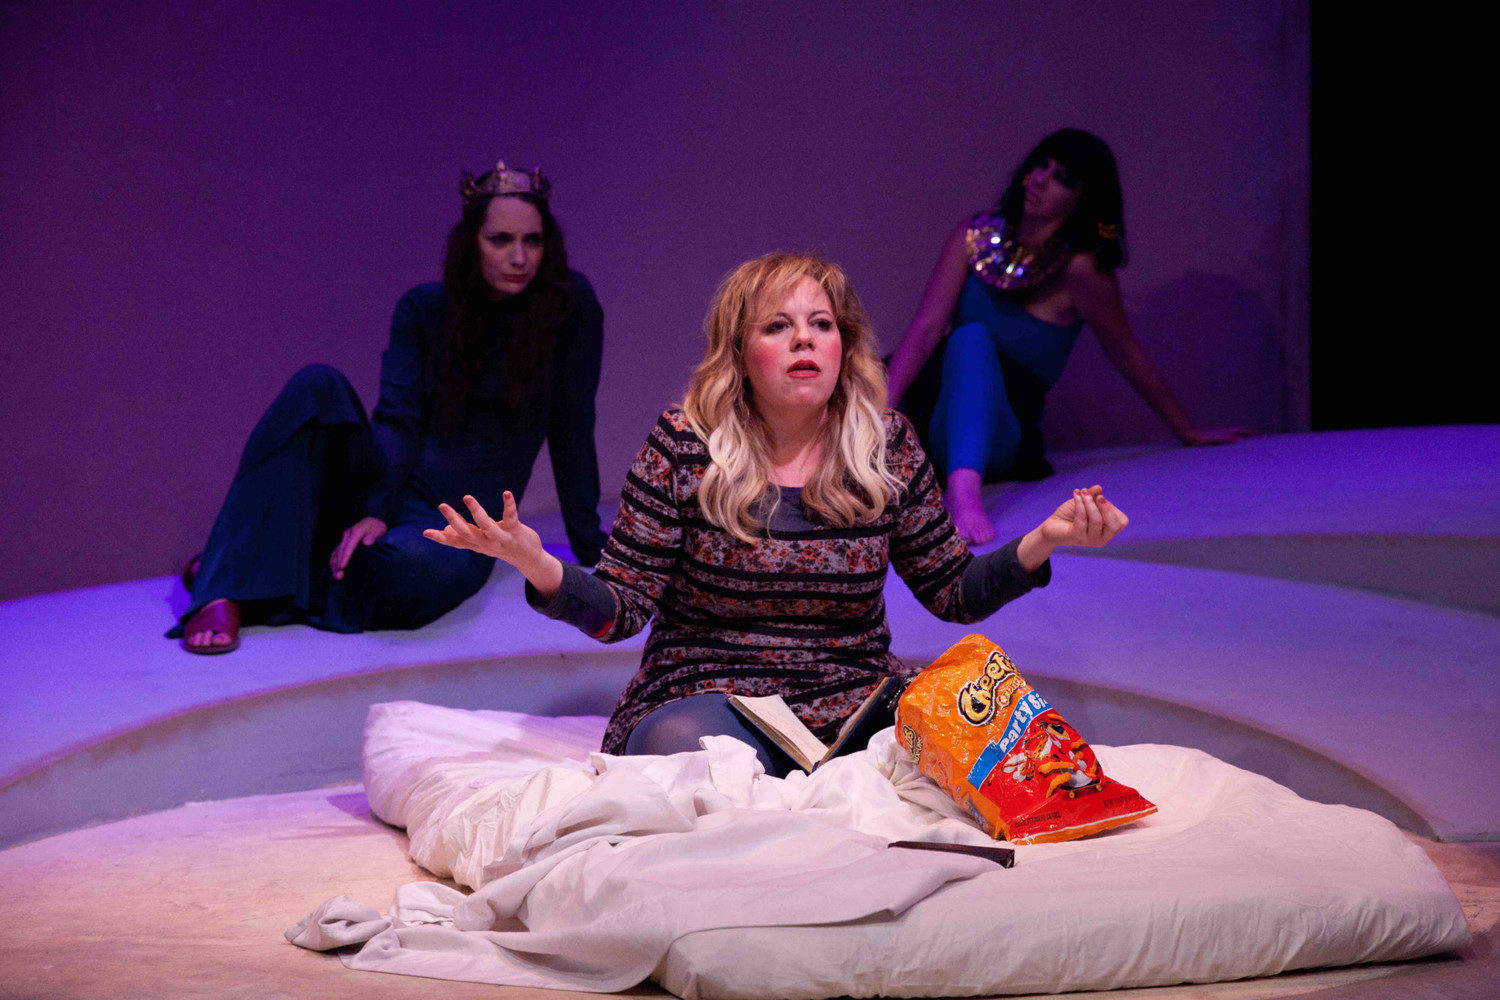 BWW Review: CLEO, THEO & WU TAKE ON WOMAN'S DOMINANCE IN THE UNIVERSE   at The Theatre Of Note